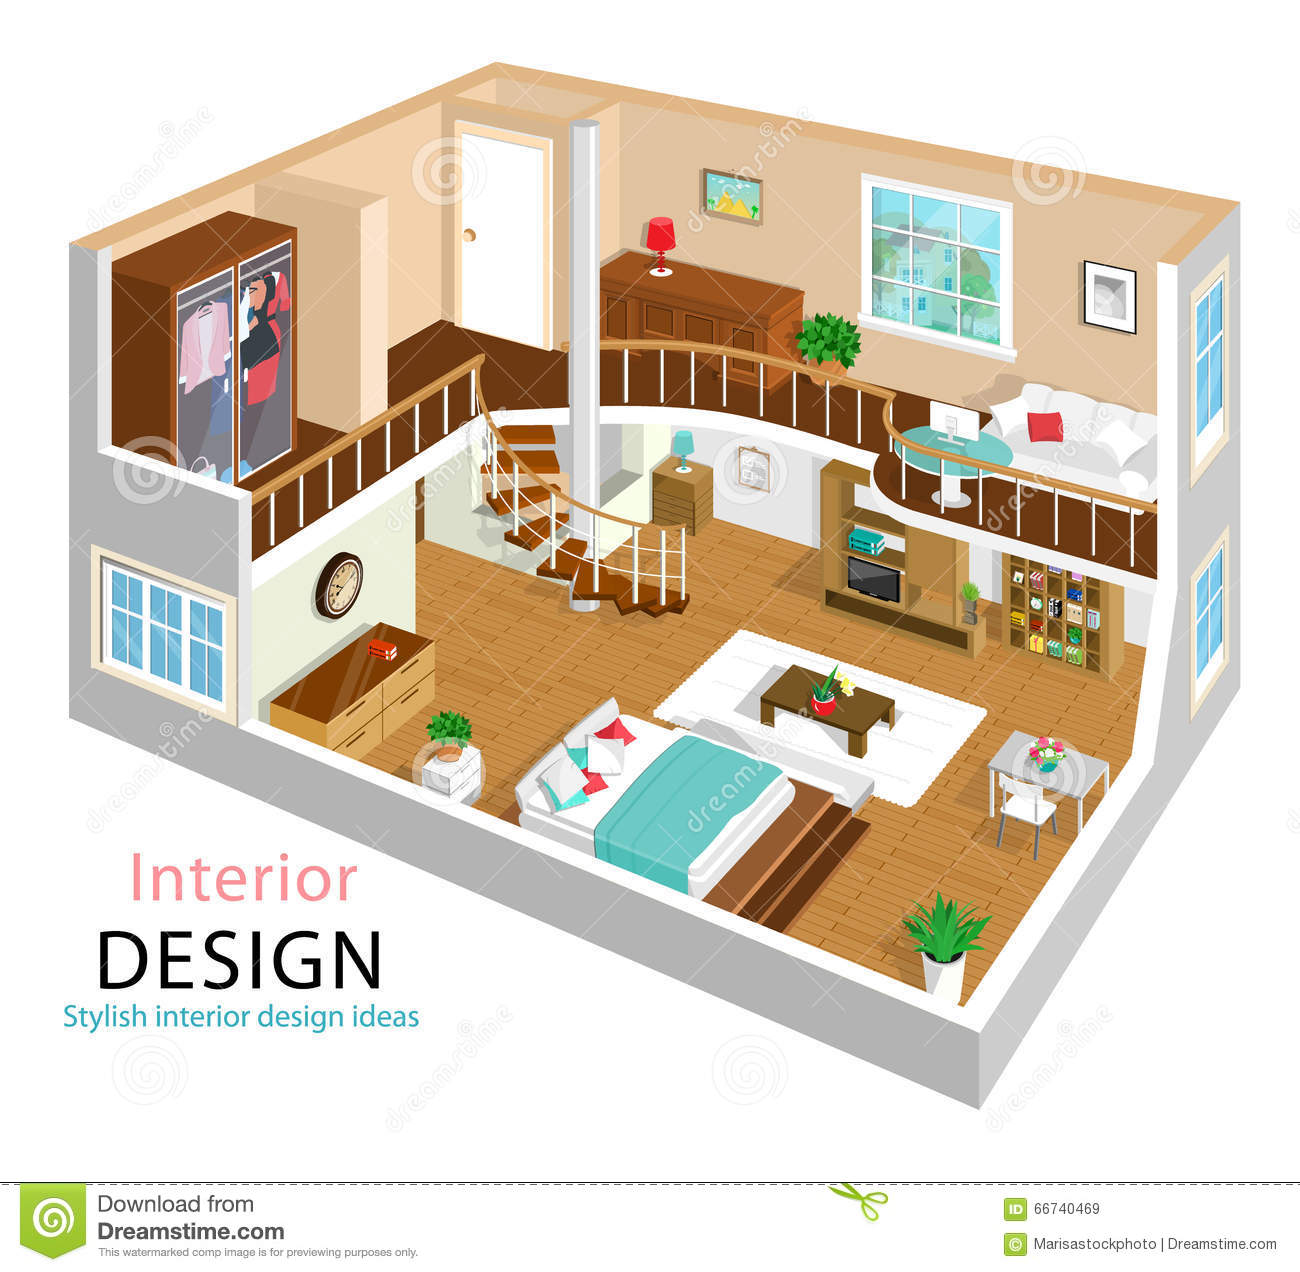 A vector illustration of a modern detailed isometric apartment interior design 3d isometric room interiors